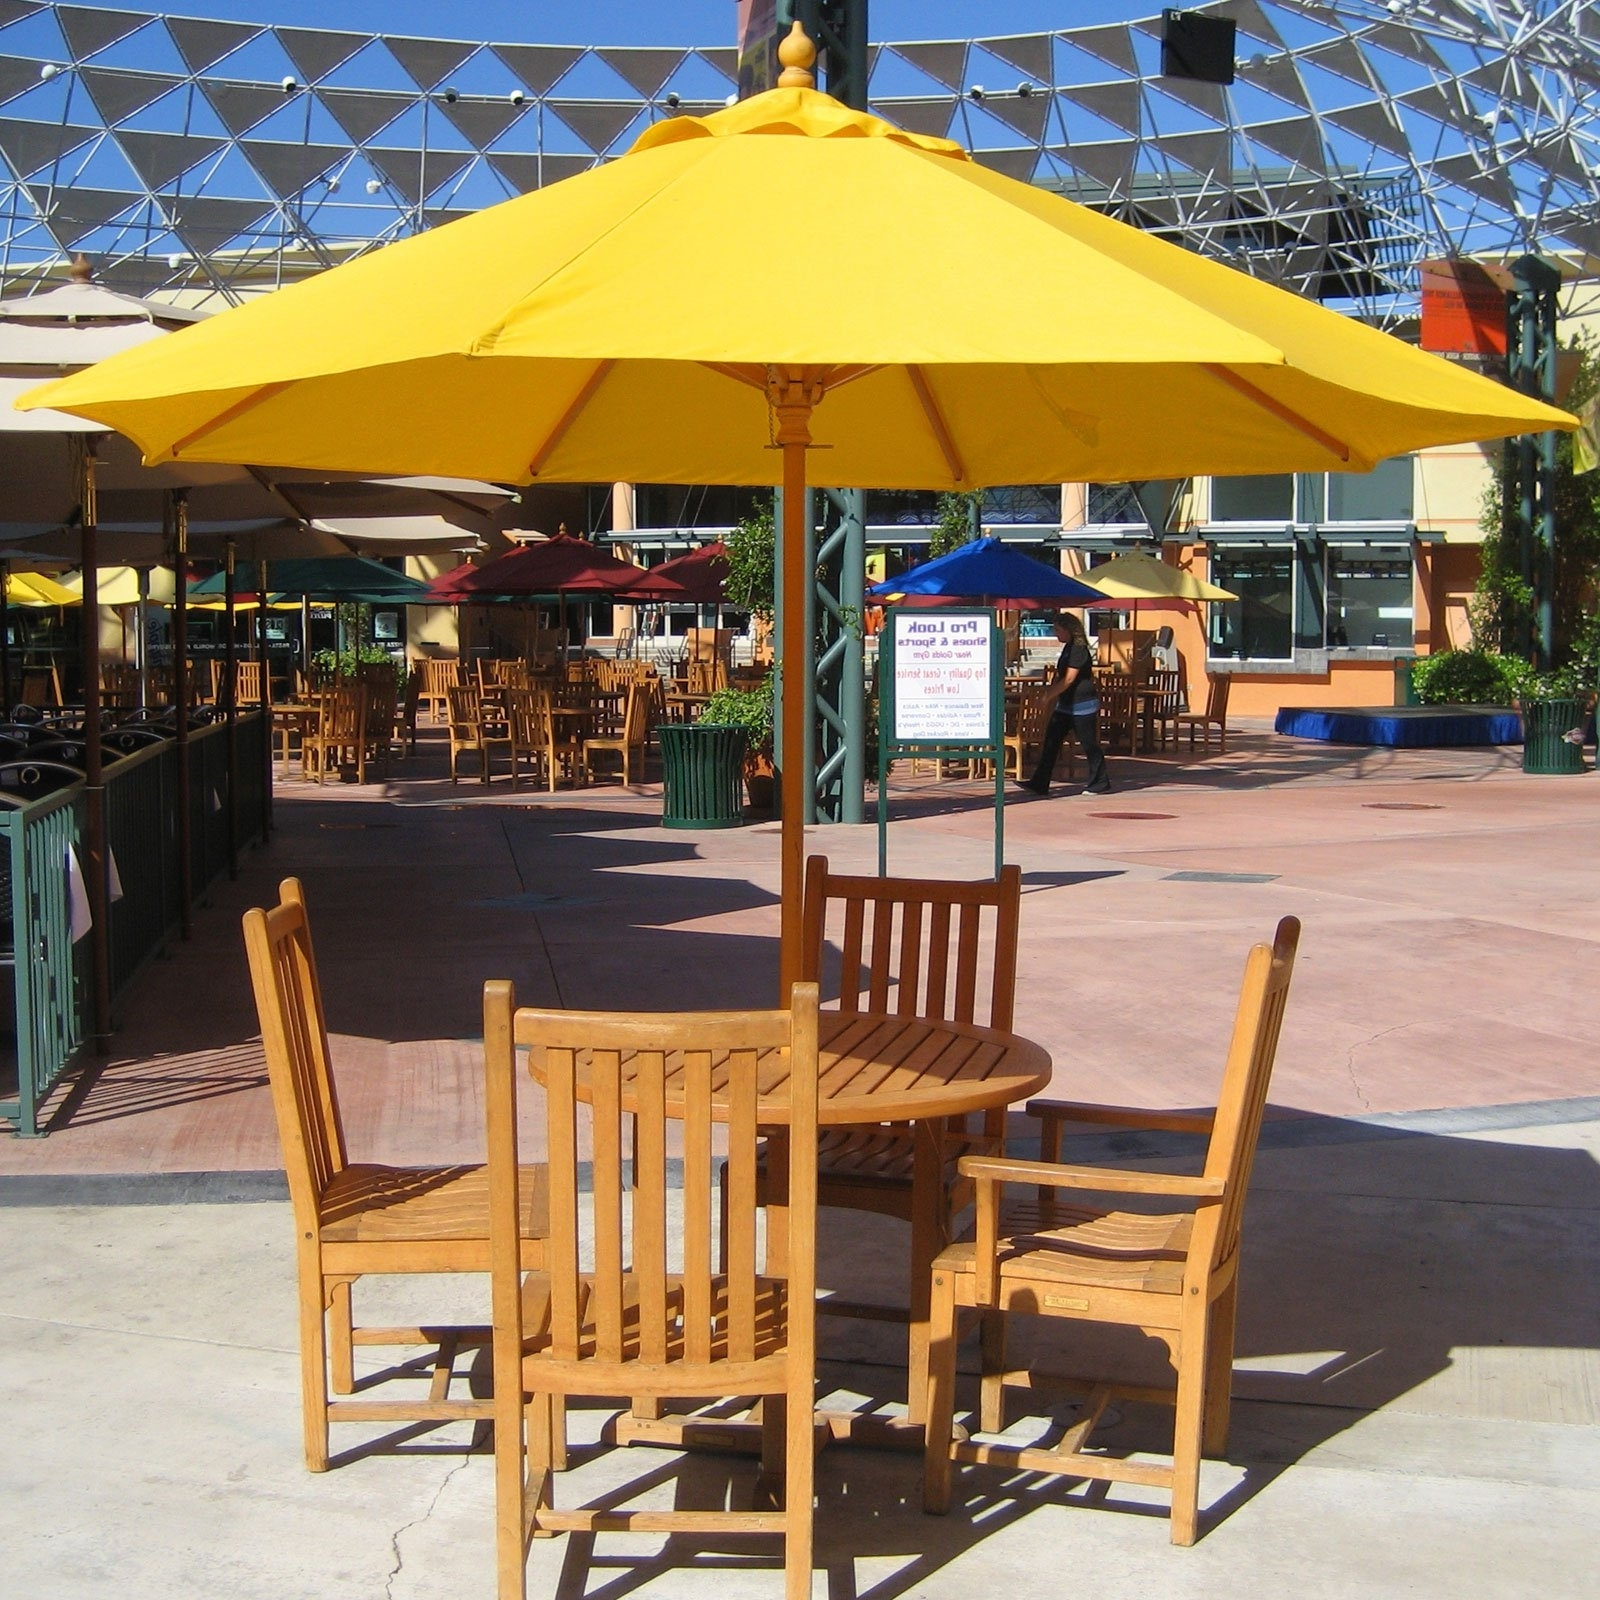 Rustic Patio Table Umbrella — Wilson Home Ideas : Making Patio Table Intended For Most Current Patio Umbrellas For Tables (View 18 of 20)